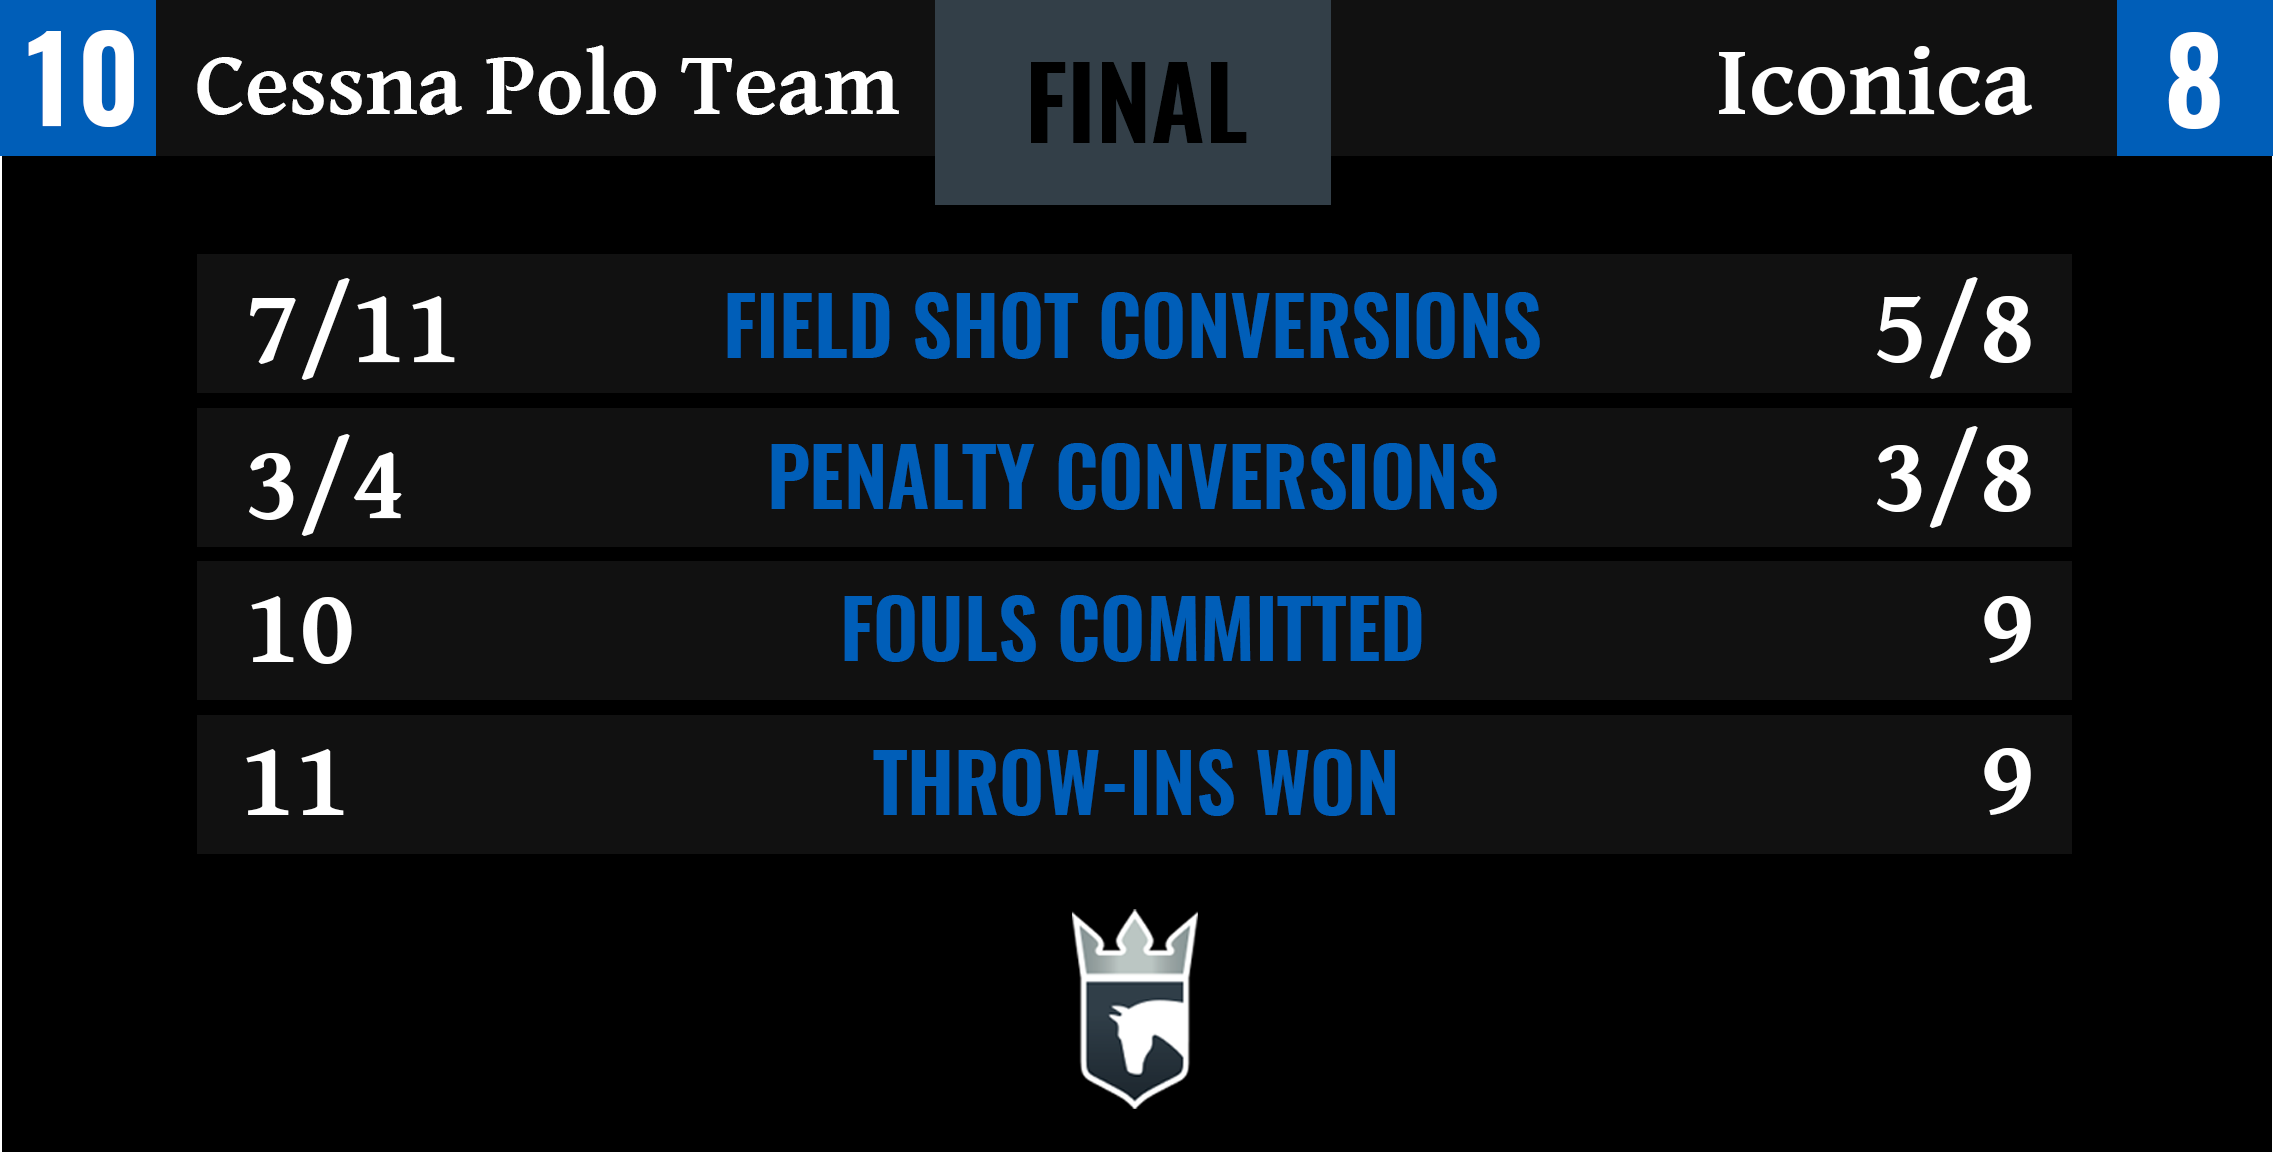 Cessna Polo Team vs Iconica Final Stats